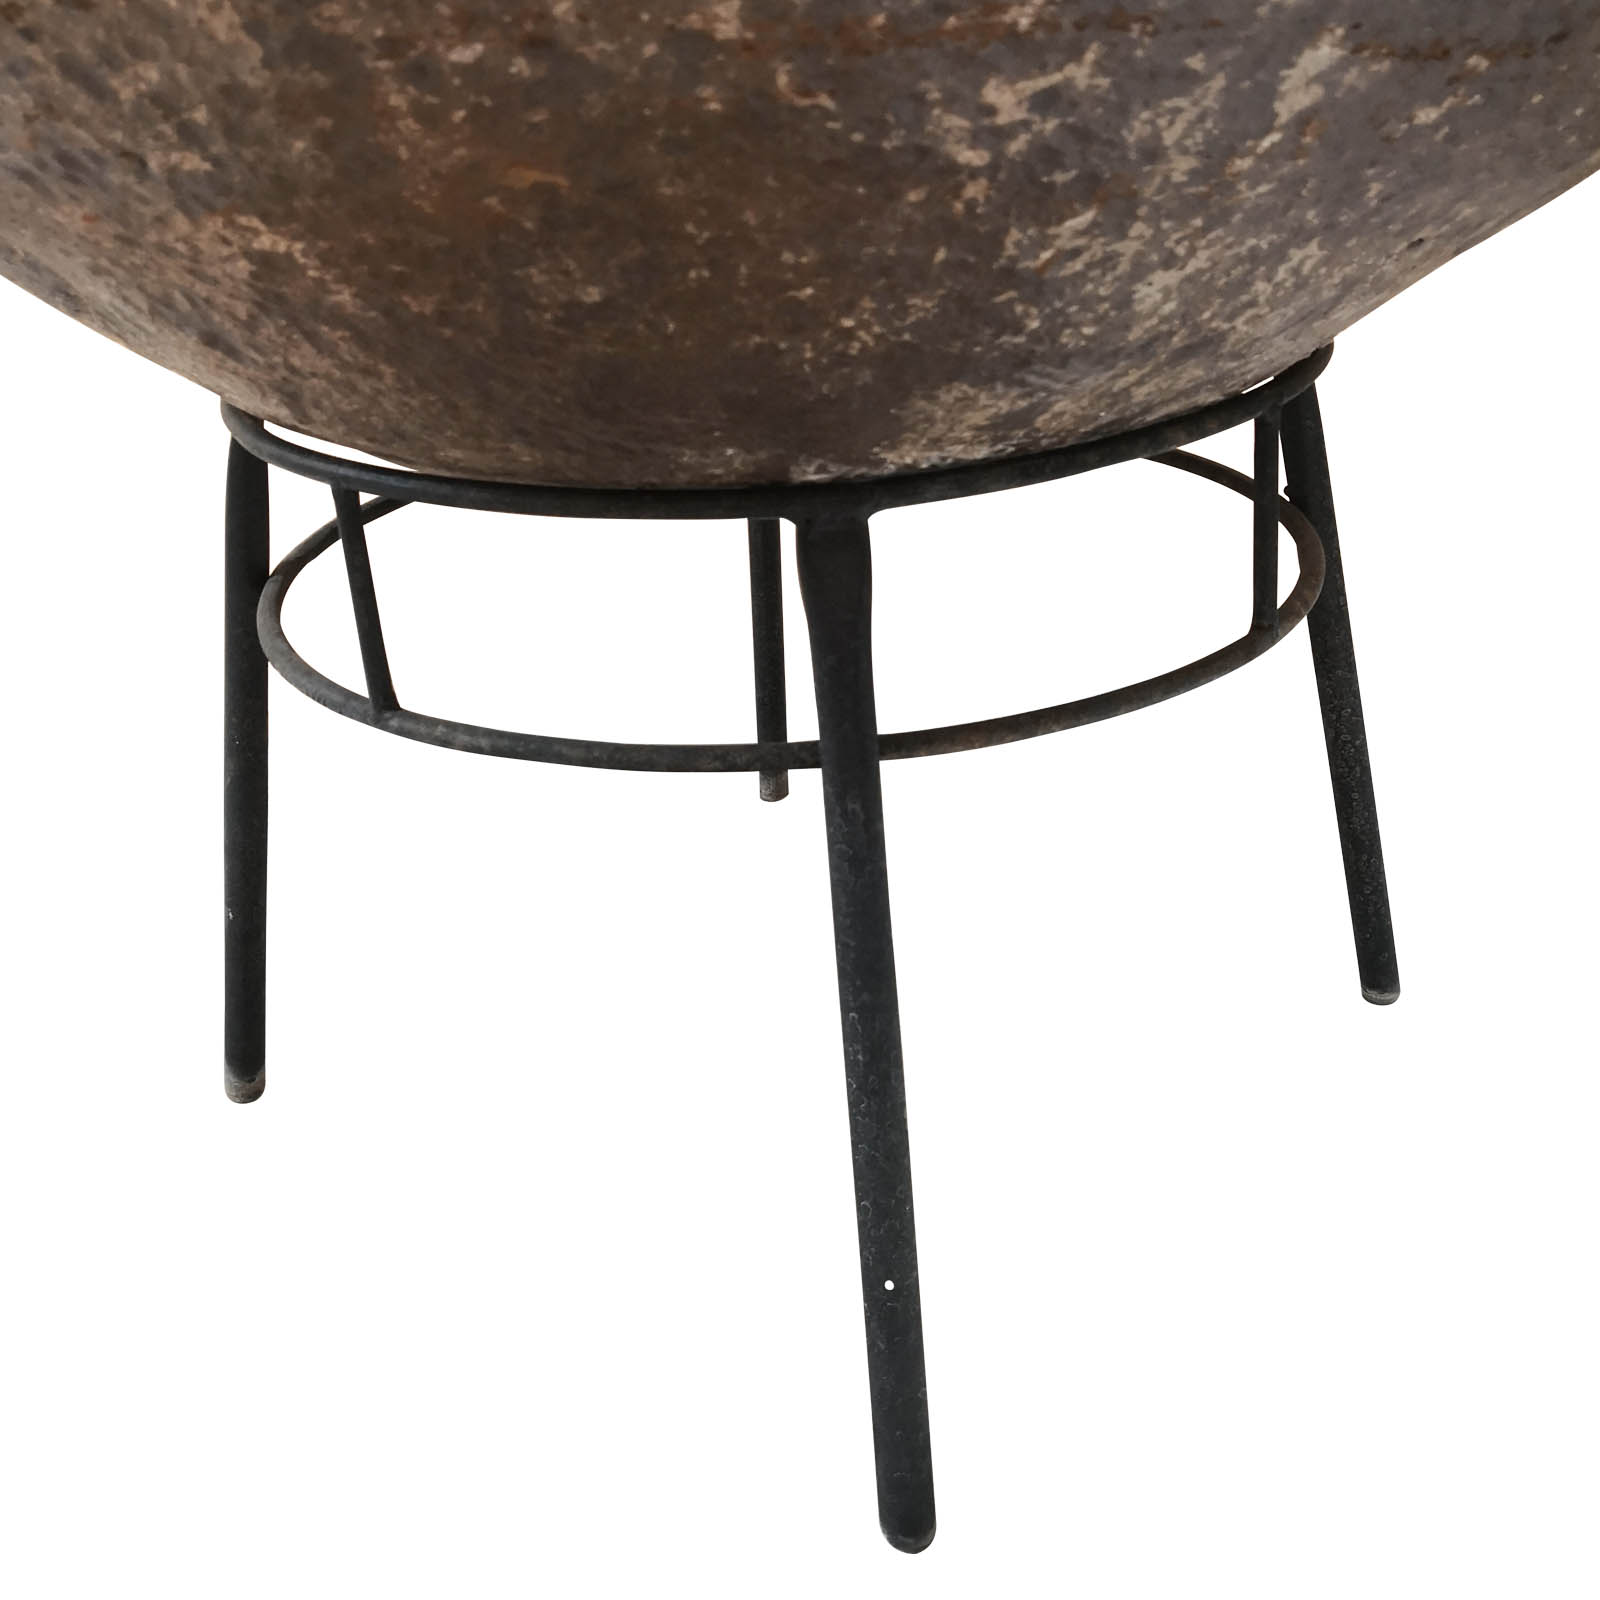 Two Design Lovers metal fire pit close up side view